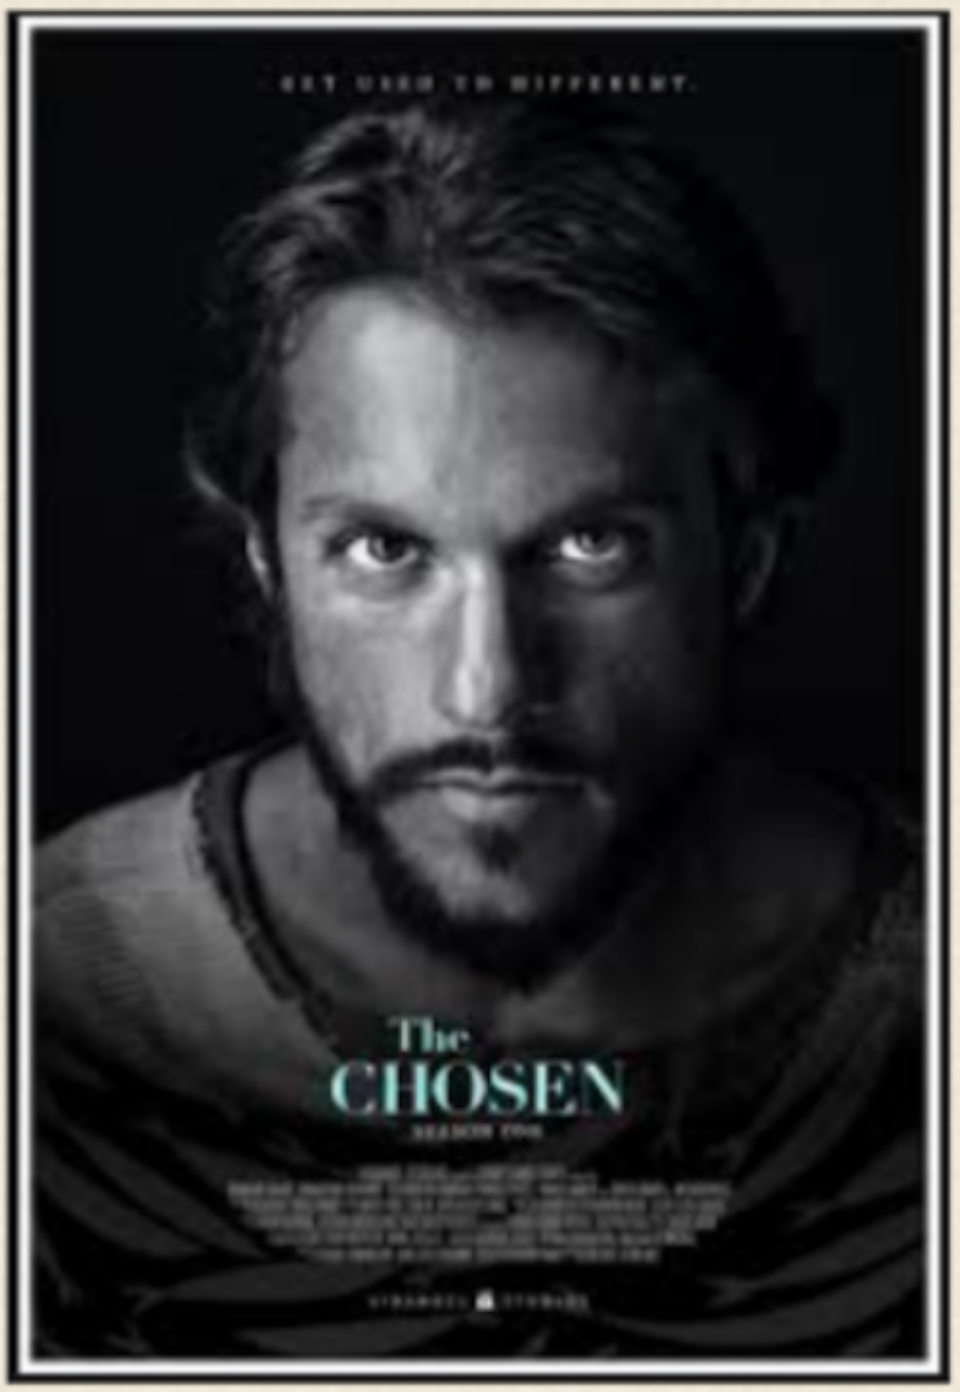 Congrats to Tara Brannon who won the entire 1st Season of THE CHOSEN on DVD! If you haven't seen The Chosen yet, please please check it out today. Don't wait! Start watching The Chosen now by clicking the image above.